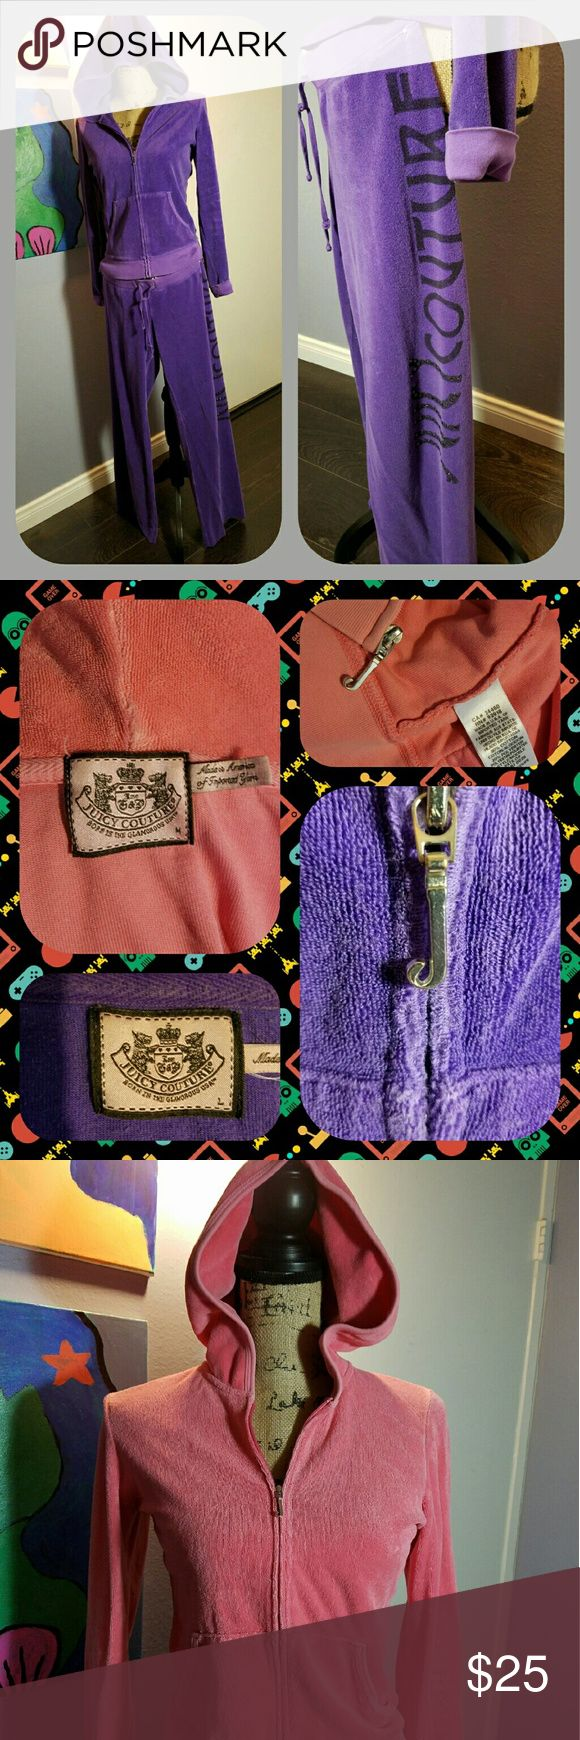 Juicy Couture bundle Here is a JUICY COUTURE bundle! Terry cloth jogging suits. The purple jacket is L and lots of embellishments. The purple pants are M. The PINK jacket also has the trademark Juicy *J*. All super soft fabric. Bright colors. Fancy for the gym or casual wear. Quality. Priced to sell!!! Juicy Couture Other